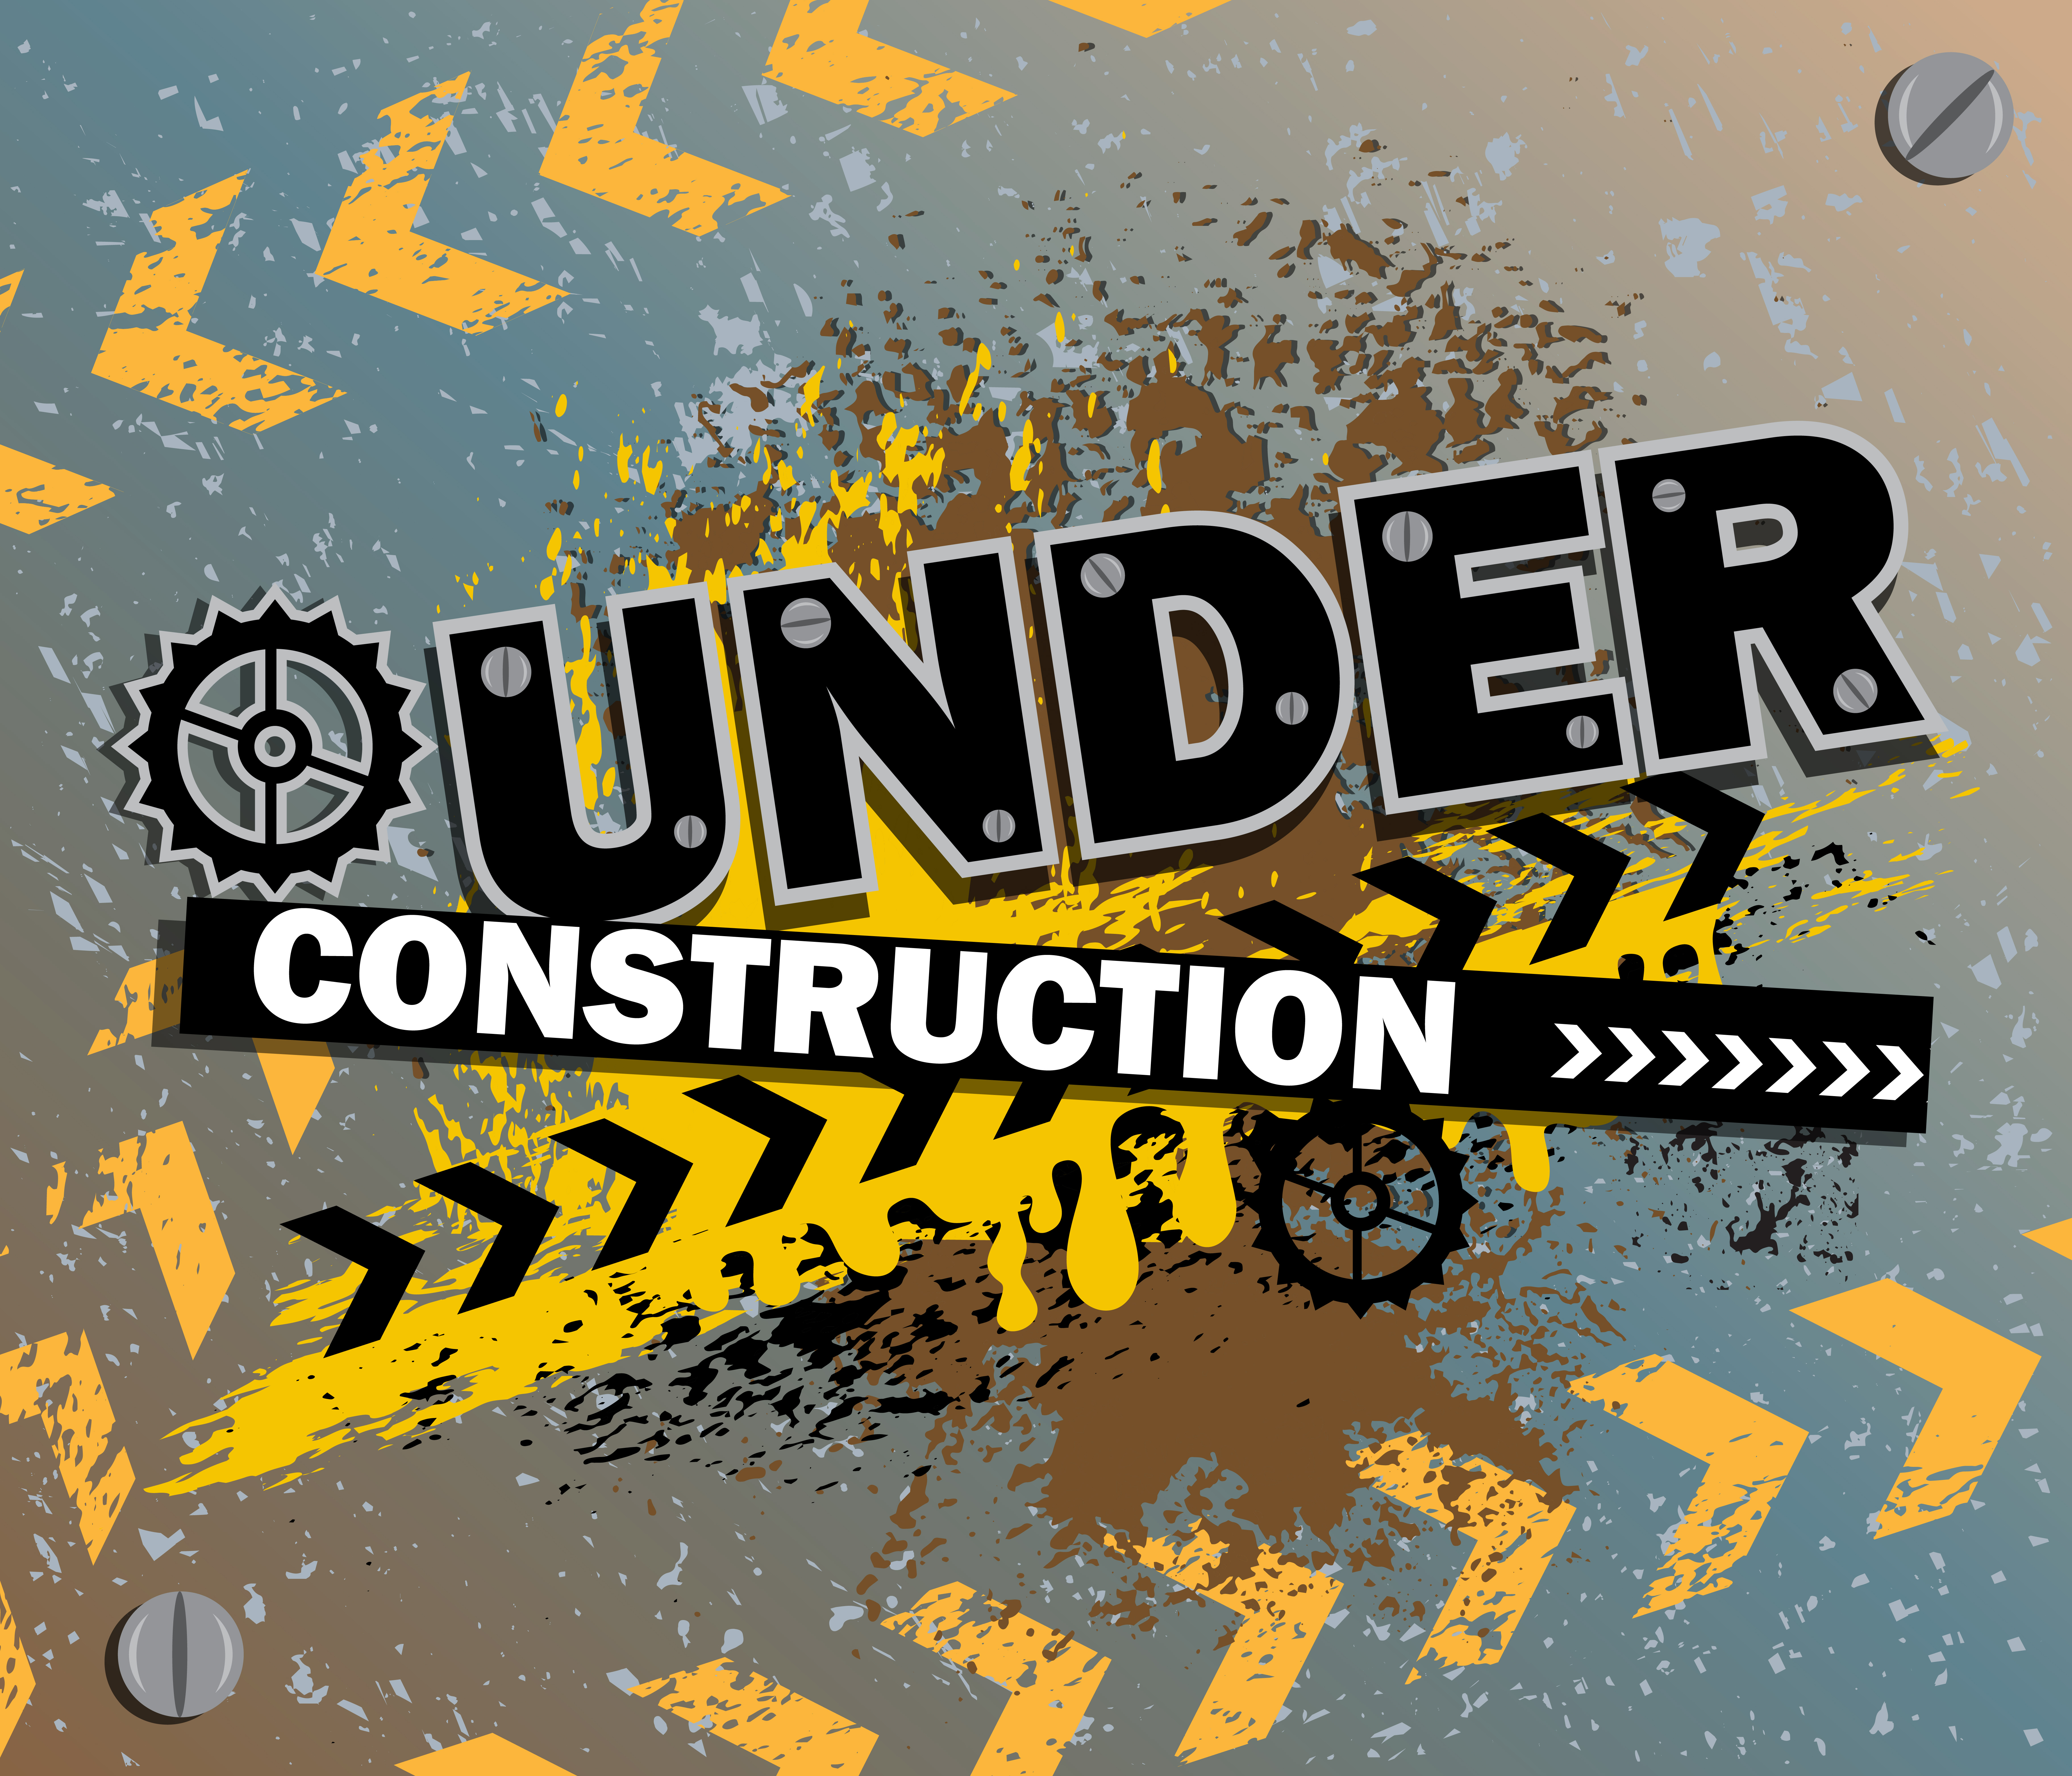 Construction background clipart jpg Under Construction Background | Gallery Yopriceville - High-Quality ... jpg